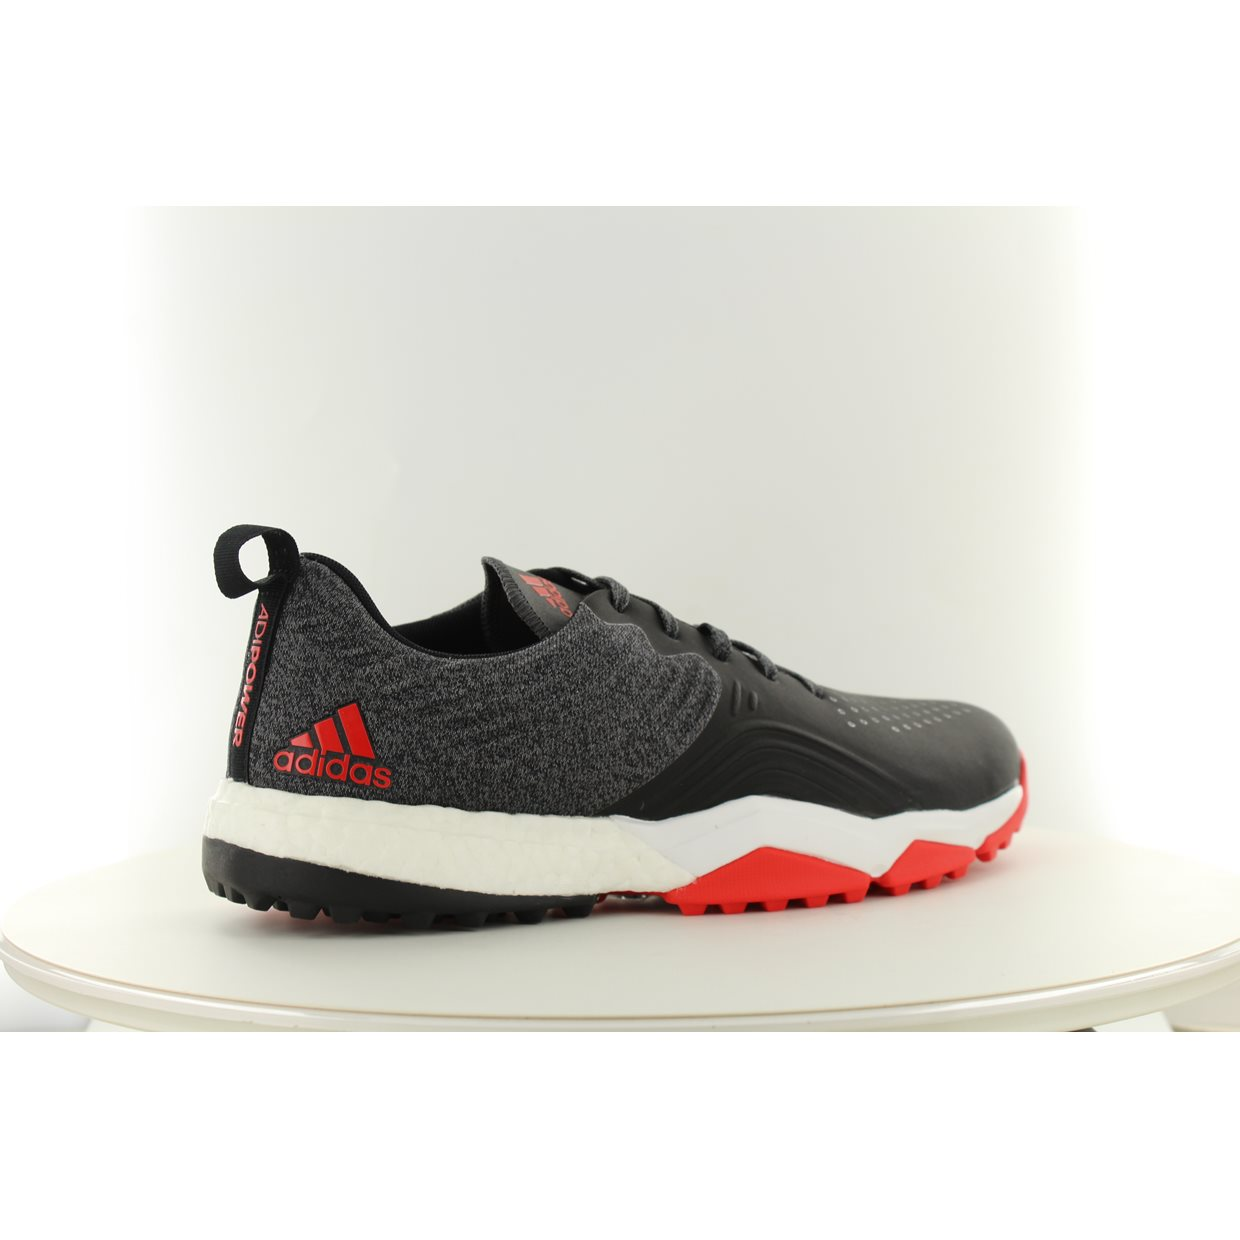 size 40 0819c 17b52 Adidas adiPower 4orged S Spikeless Shoes at GlobalGolf.com